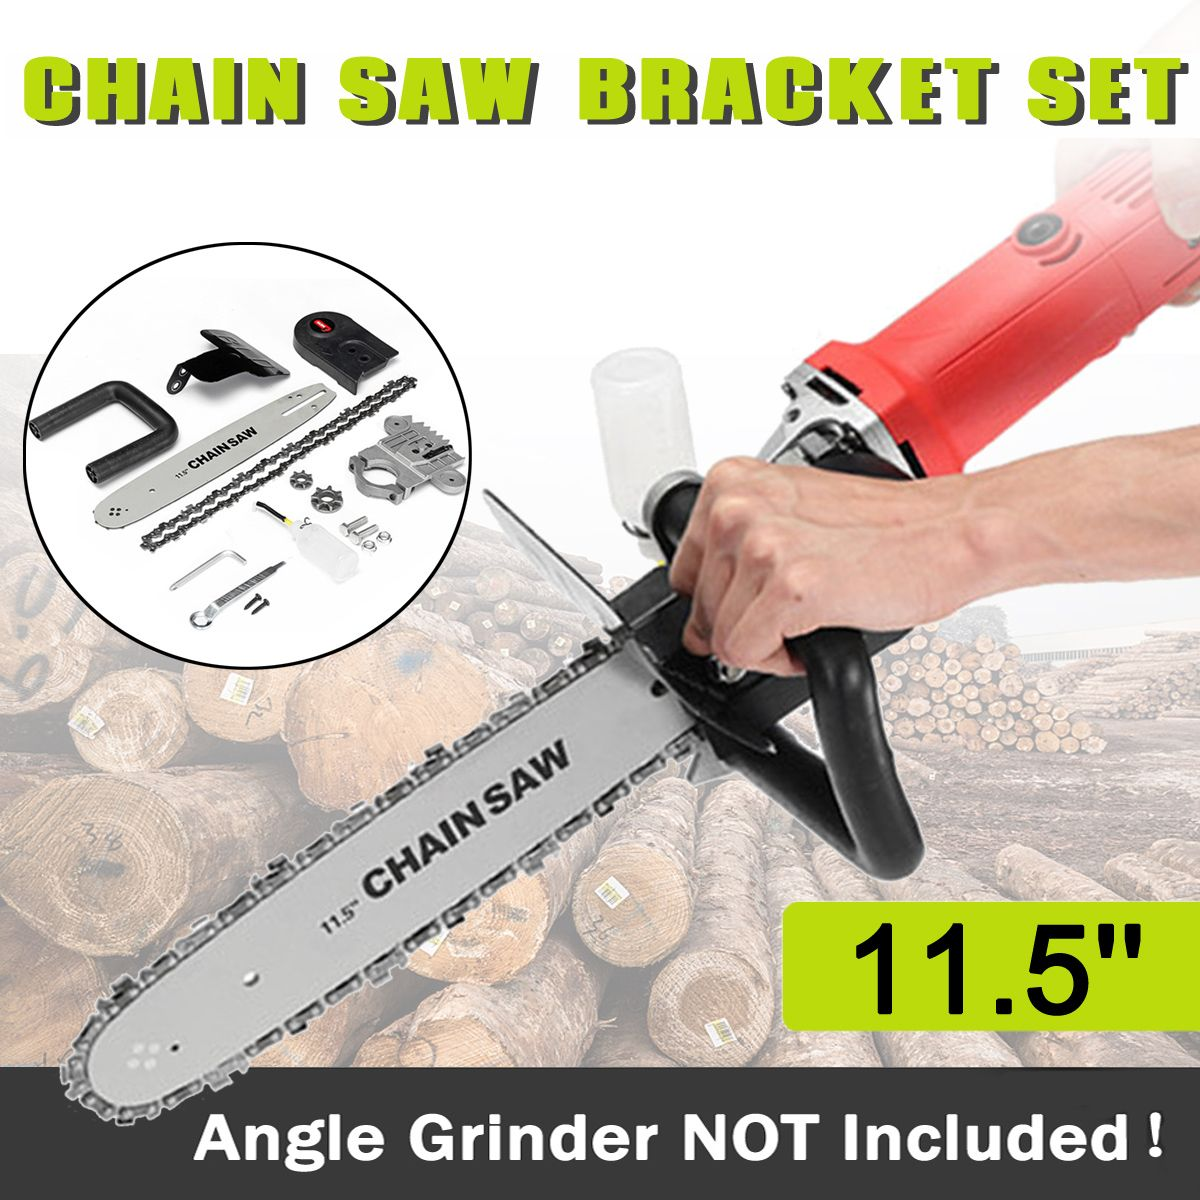 Drillpro Upgrade 11.5 Inch Chainsaw Bracket Changed 100 125 150 Angle Grinder M10/M16 Into Chain Saw Woodworking Tool